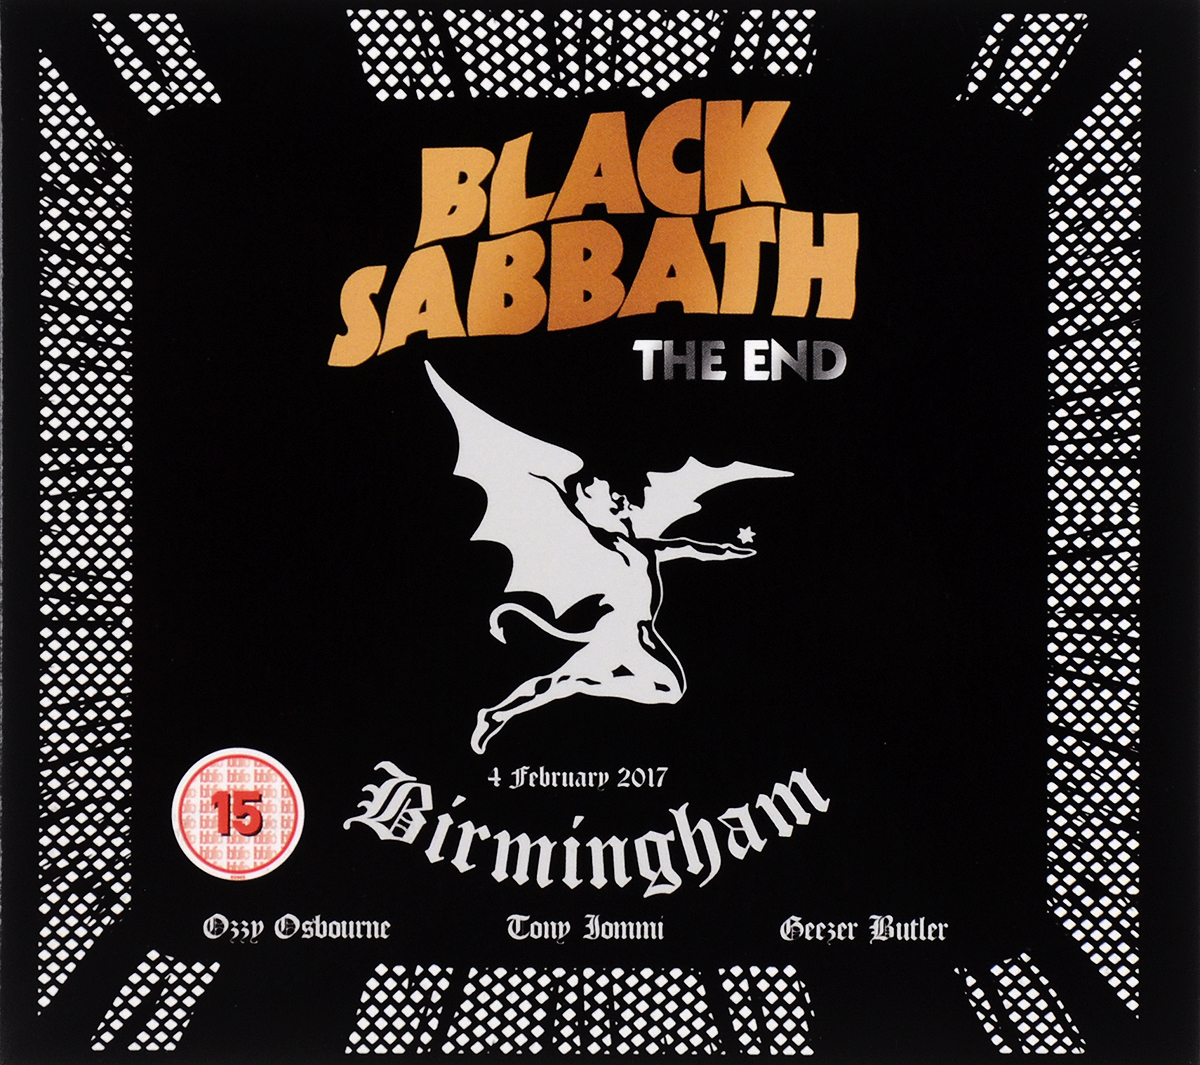 Black Sabbath. The End (Blu-ray +CD) francis rossi live from st luke s london blu ray